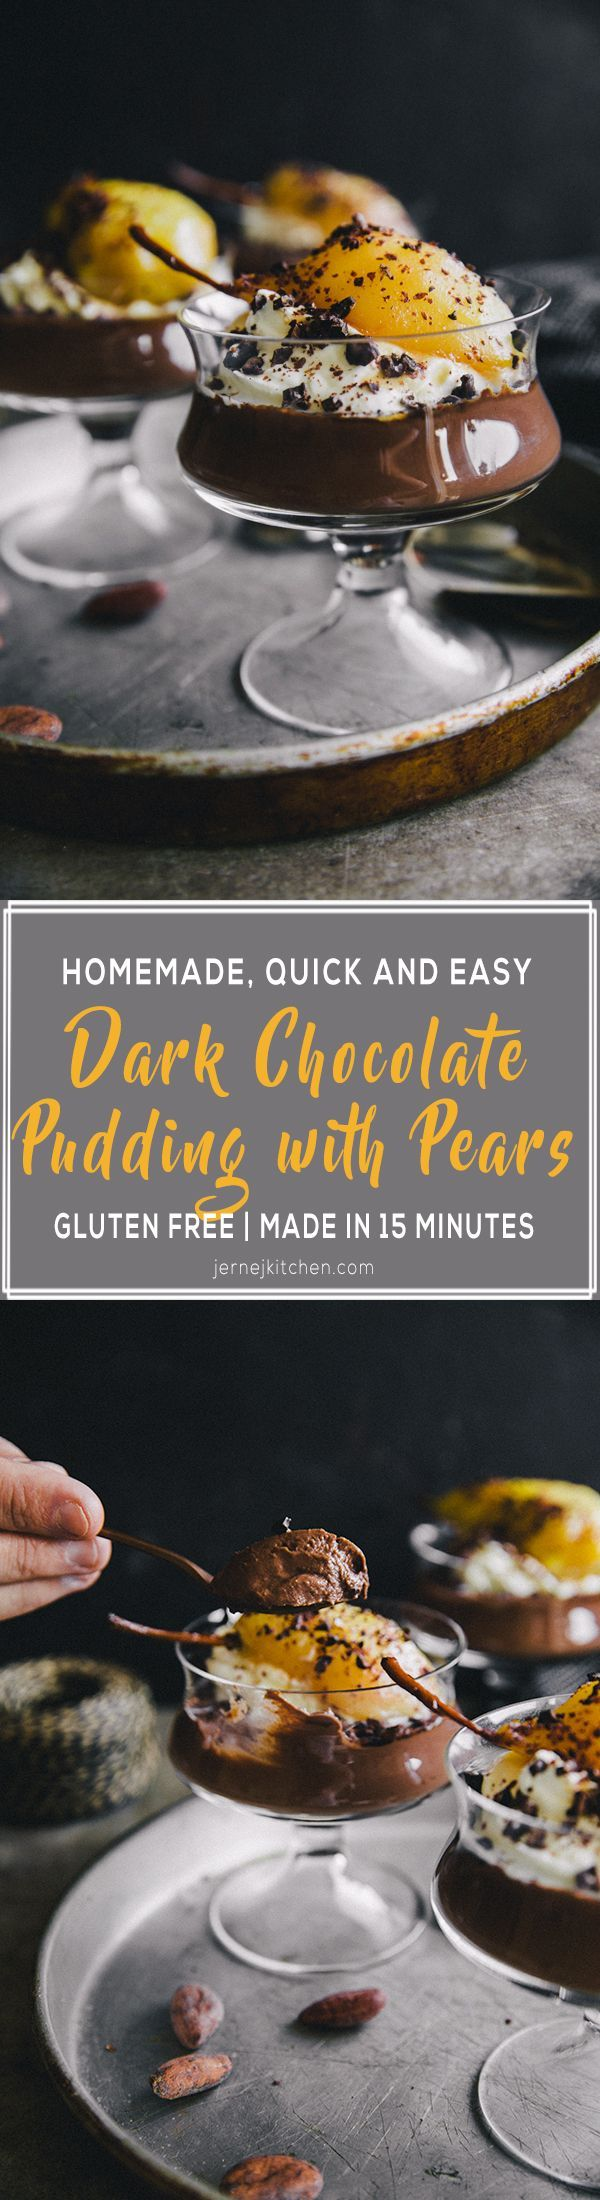 Homemade Dark Chocolate Puddings with Pears. Delicious, homemade, extra creamy and rich in flavor. Made in 15 minut (+15 min in a freezer).